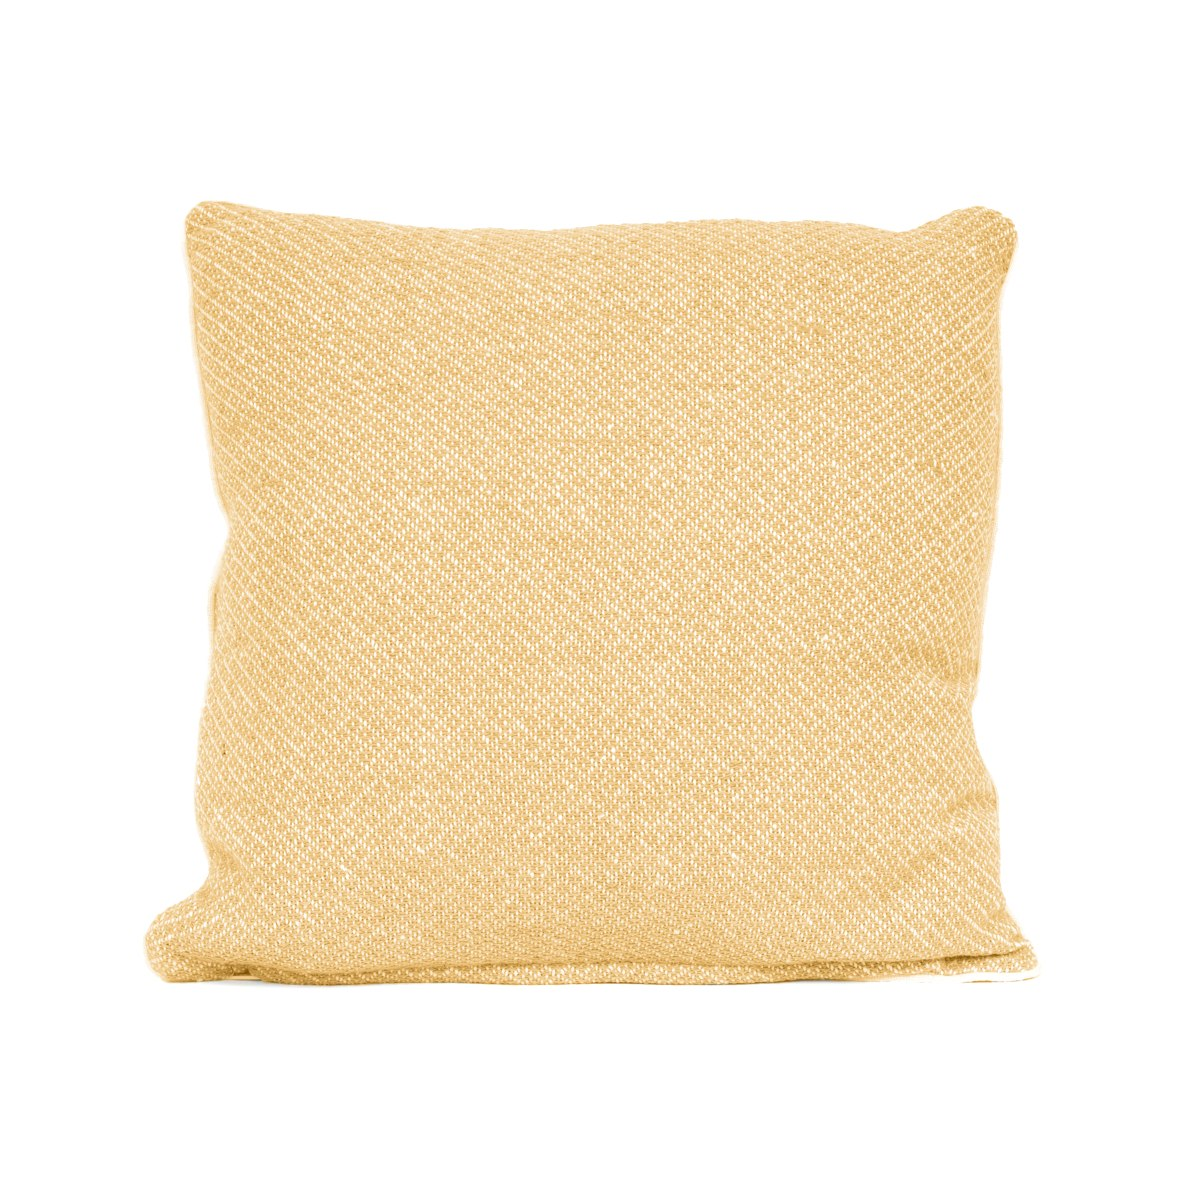 Cushion Cozy yellow